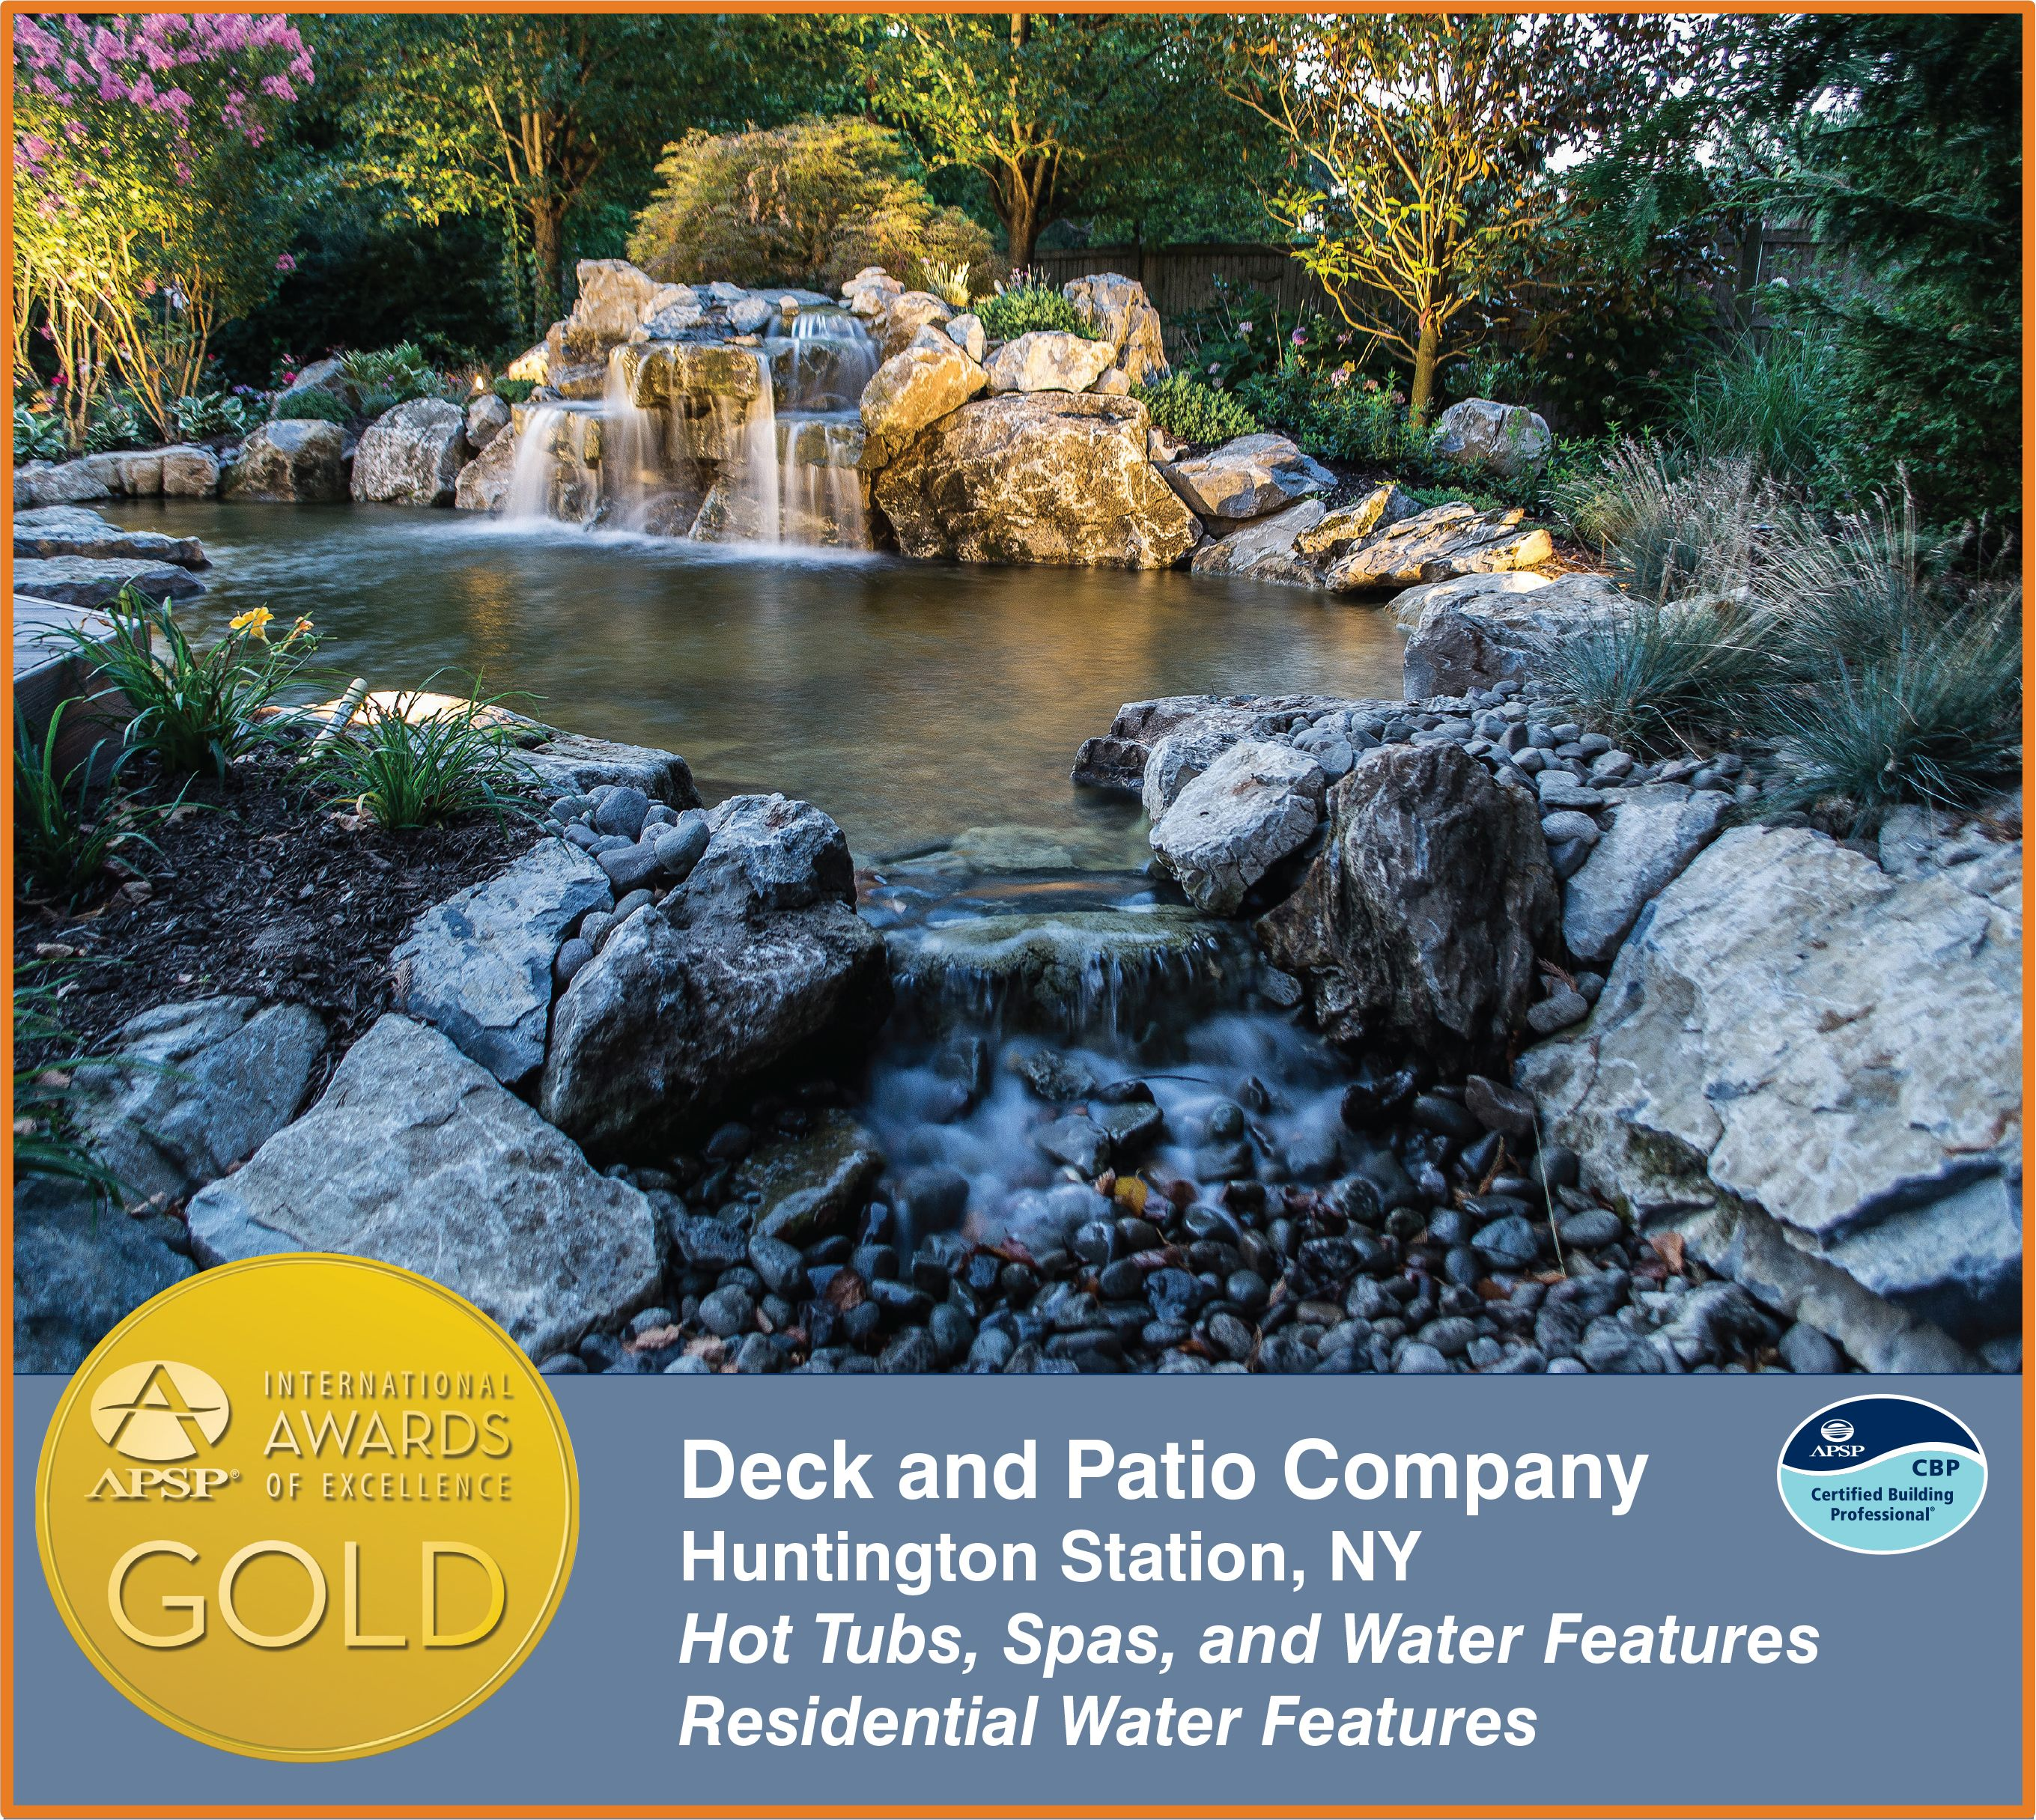 Deck and Patio's APSP Gold Award (Islip, NY):